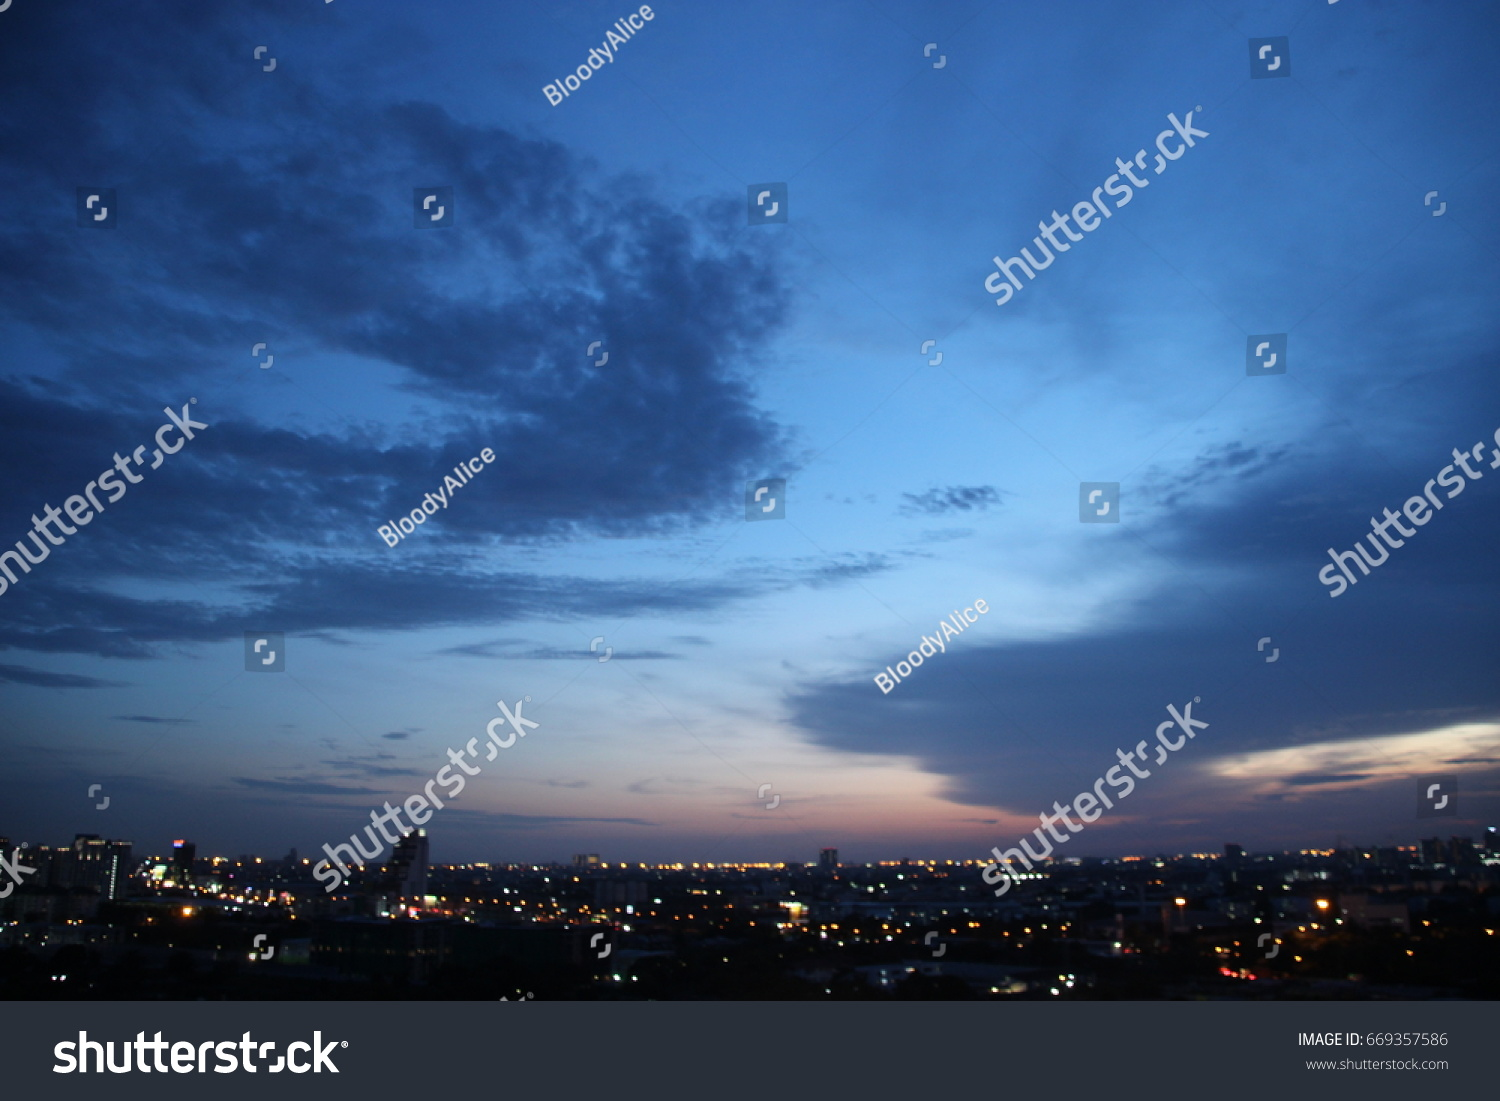 dark blue cloud with white light sky background and city light midnight evening time   #669357586